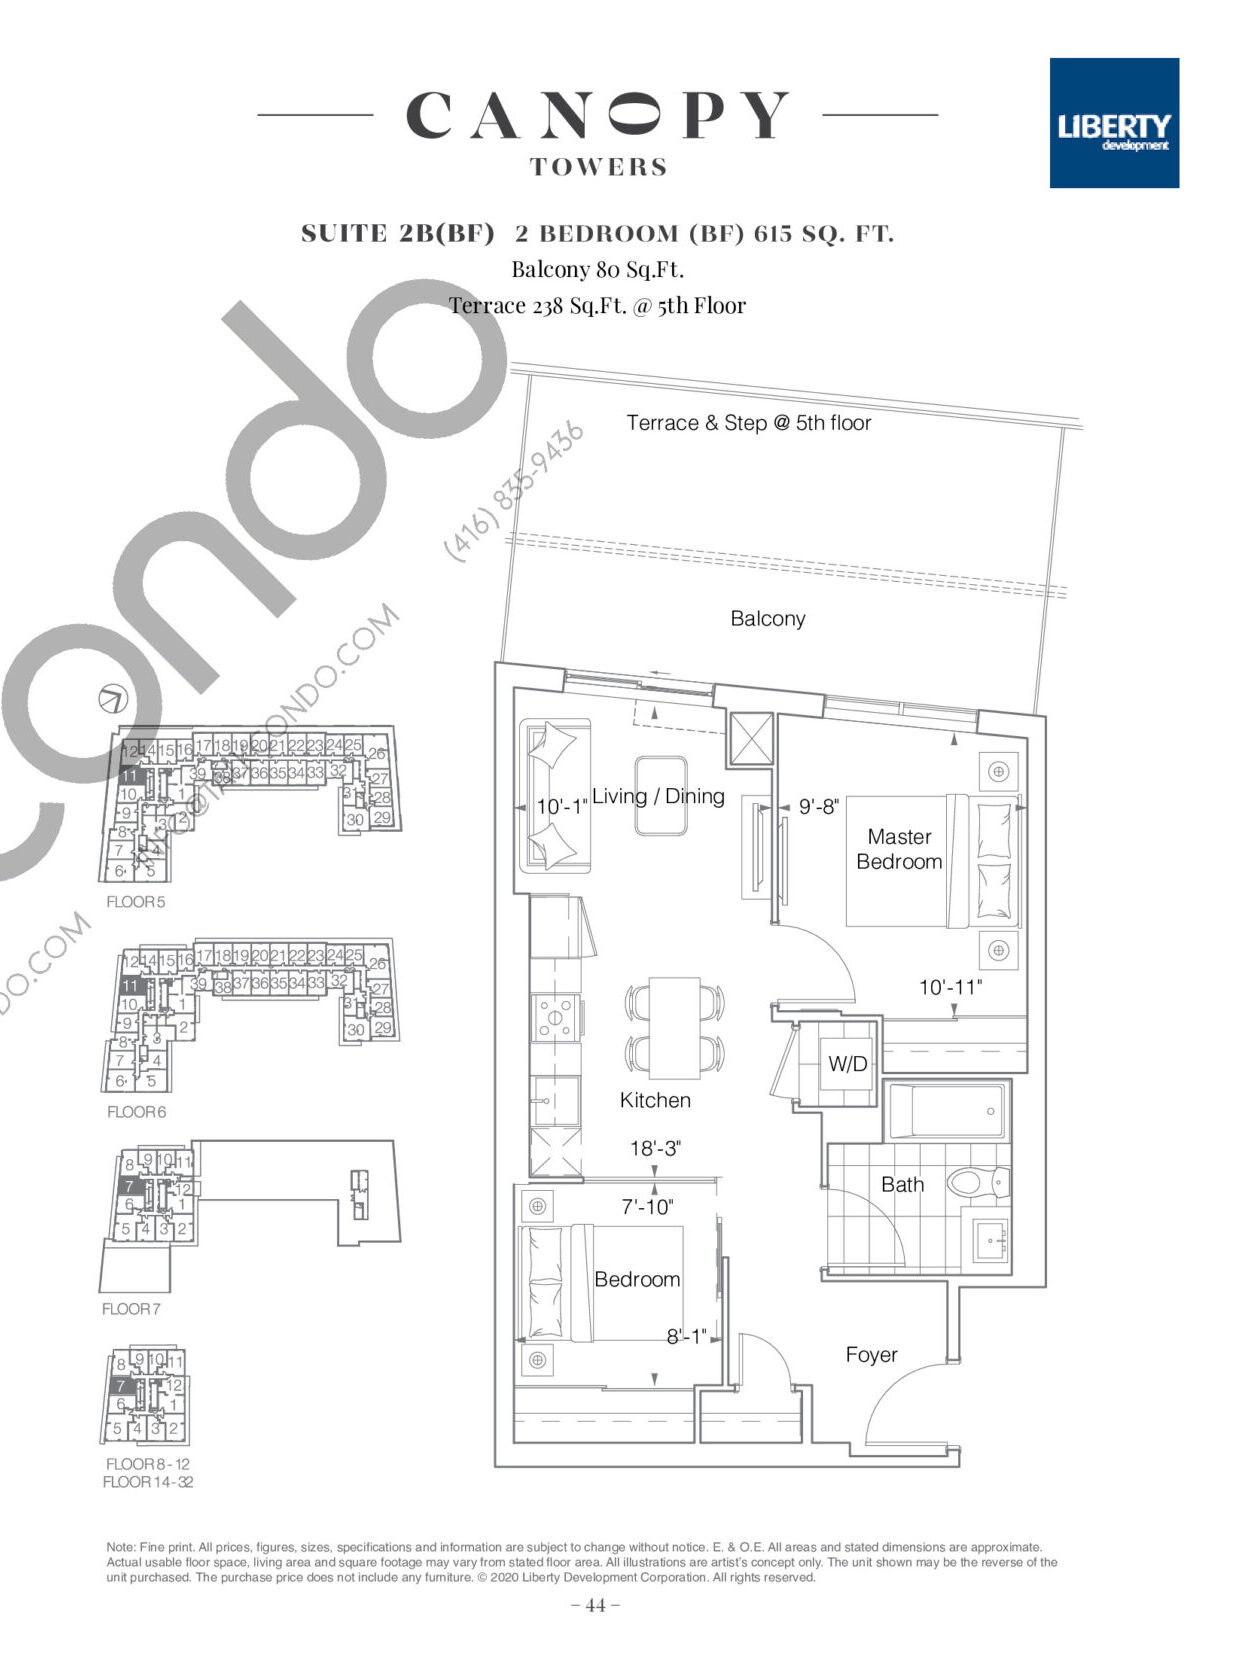 Suite 2B(BF) Floor Plan at Canopy Towers Condos - 615 sq.ft